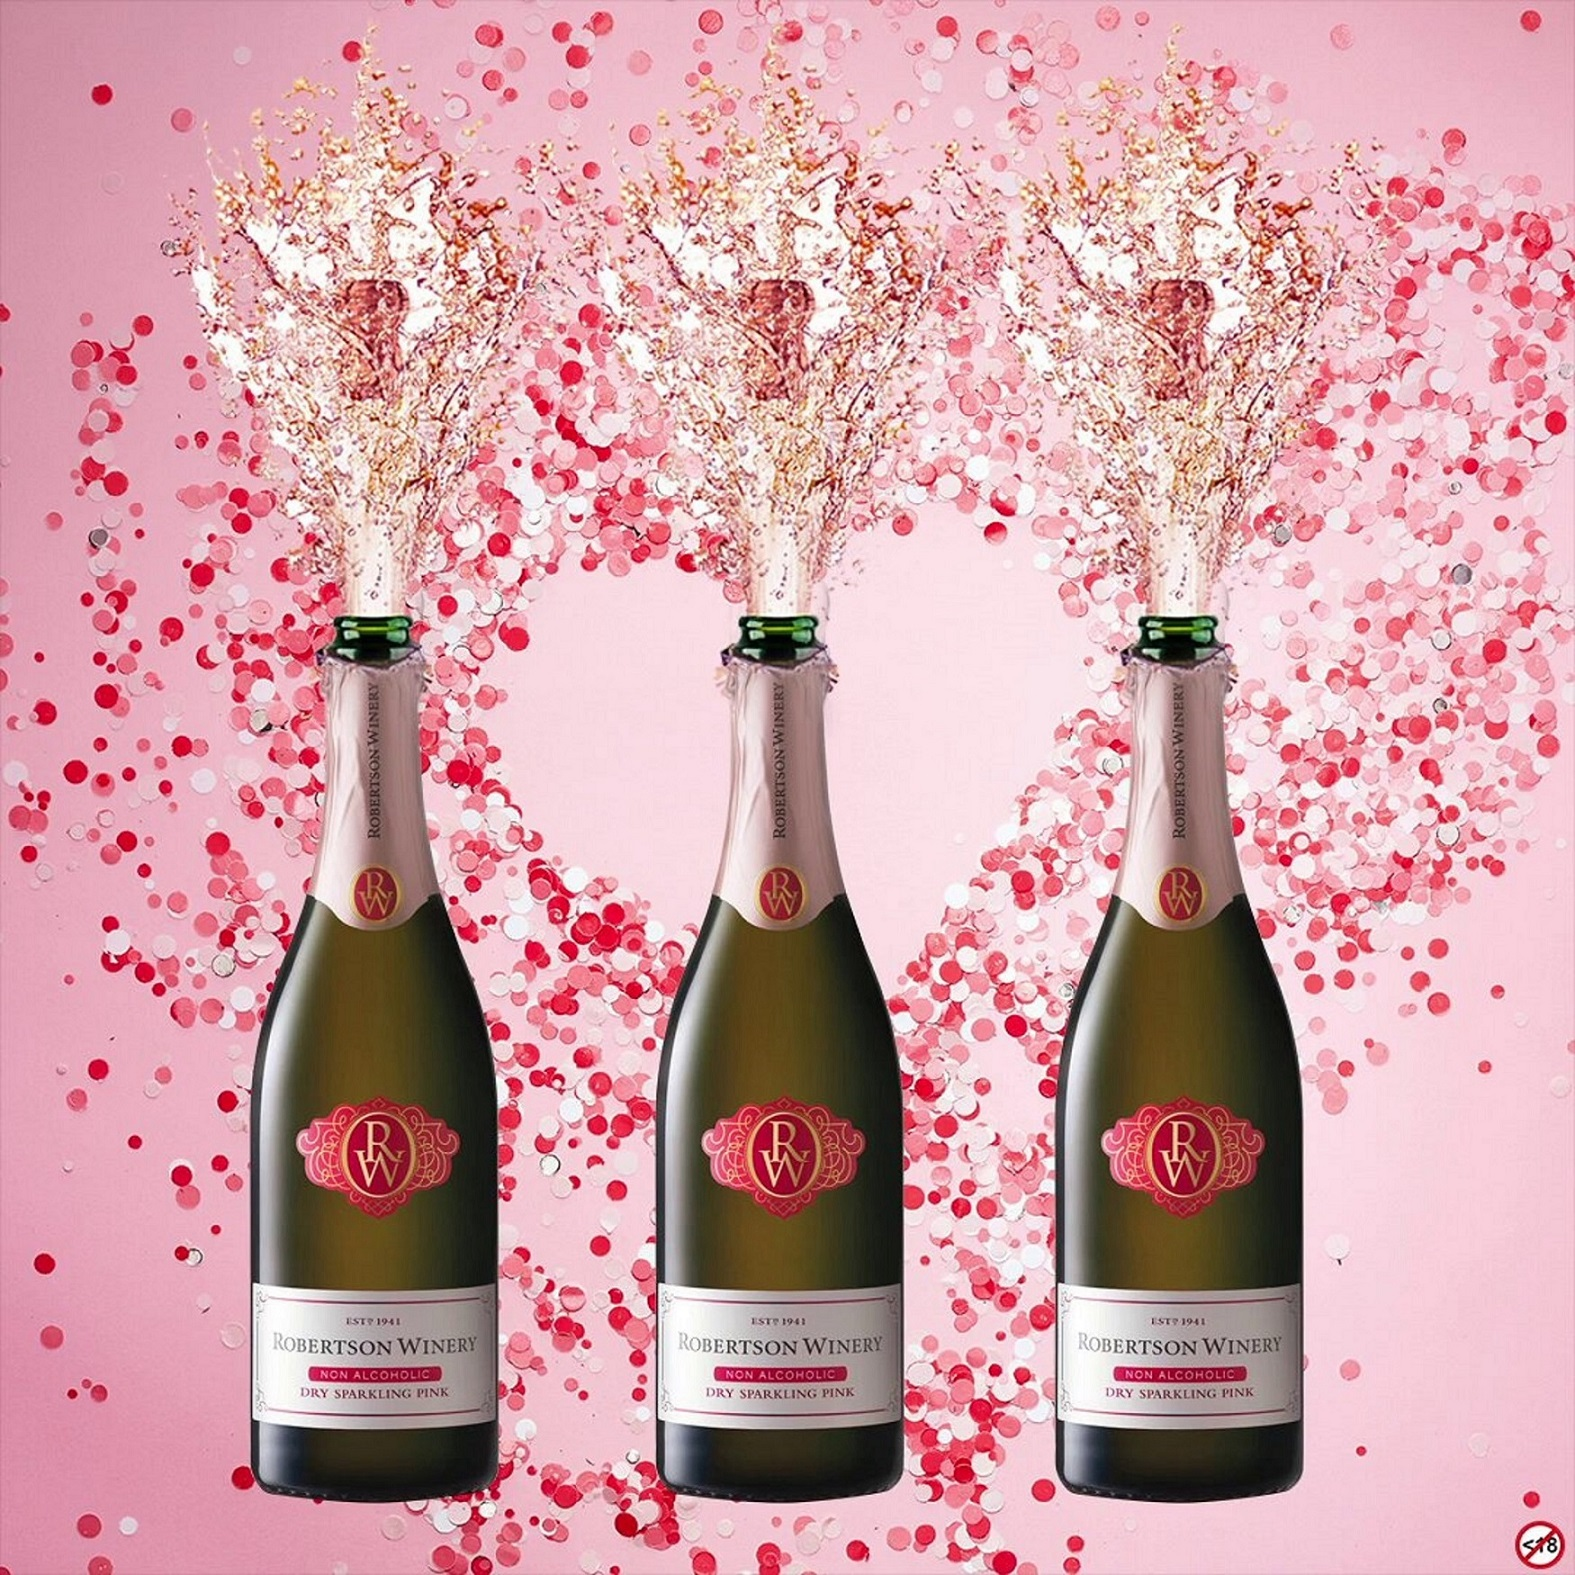 Robertson Winery Non Alcoholic Dry Sparkling